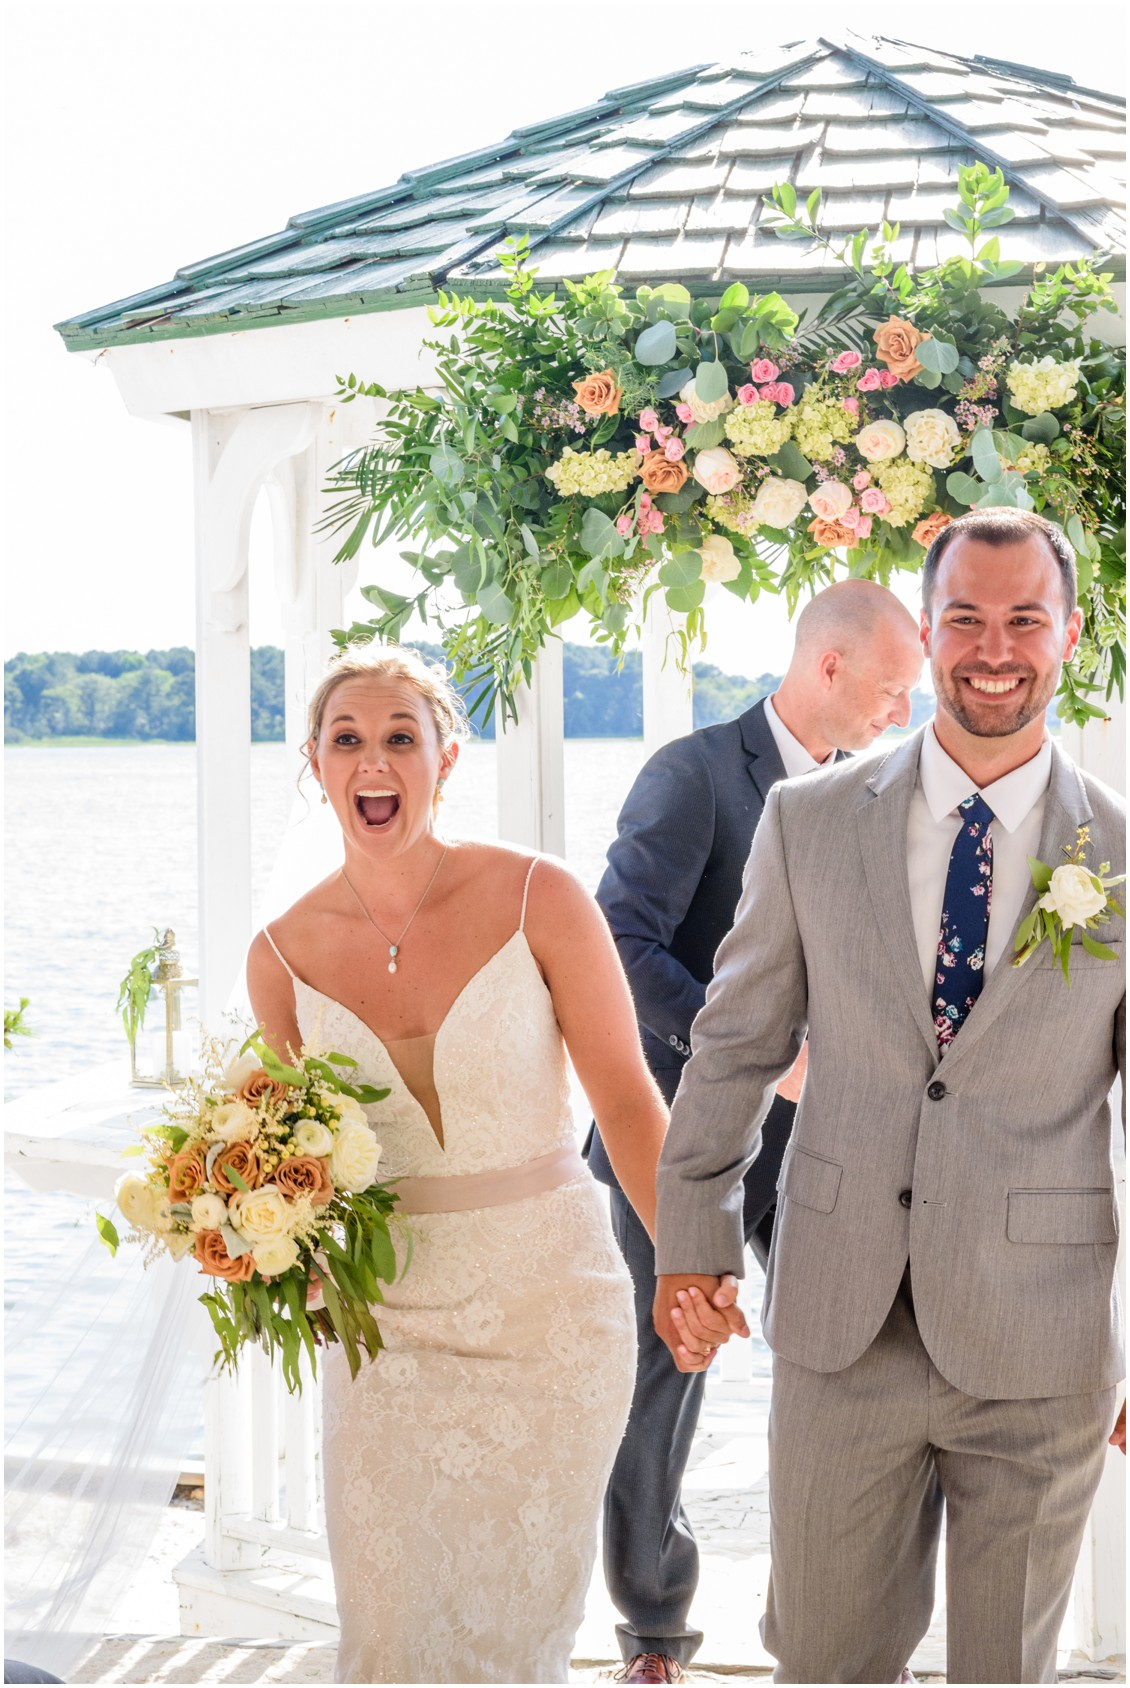 Bride and groom after wedding ceremony at summertime soirée | My Eastern Shore Wedding | J. Nicole Photography